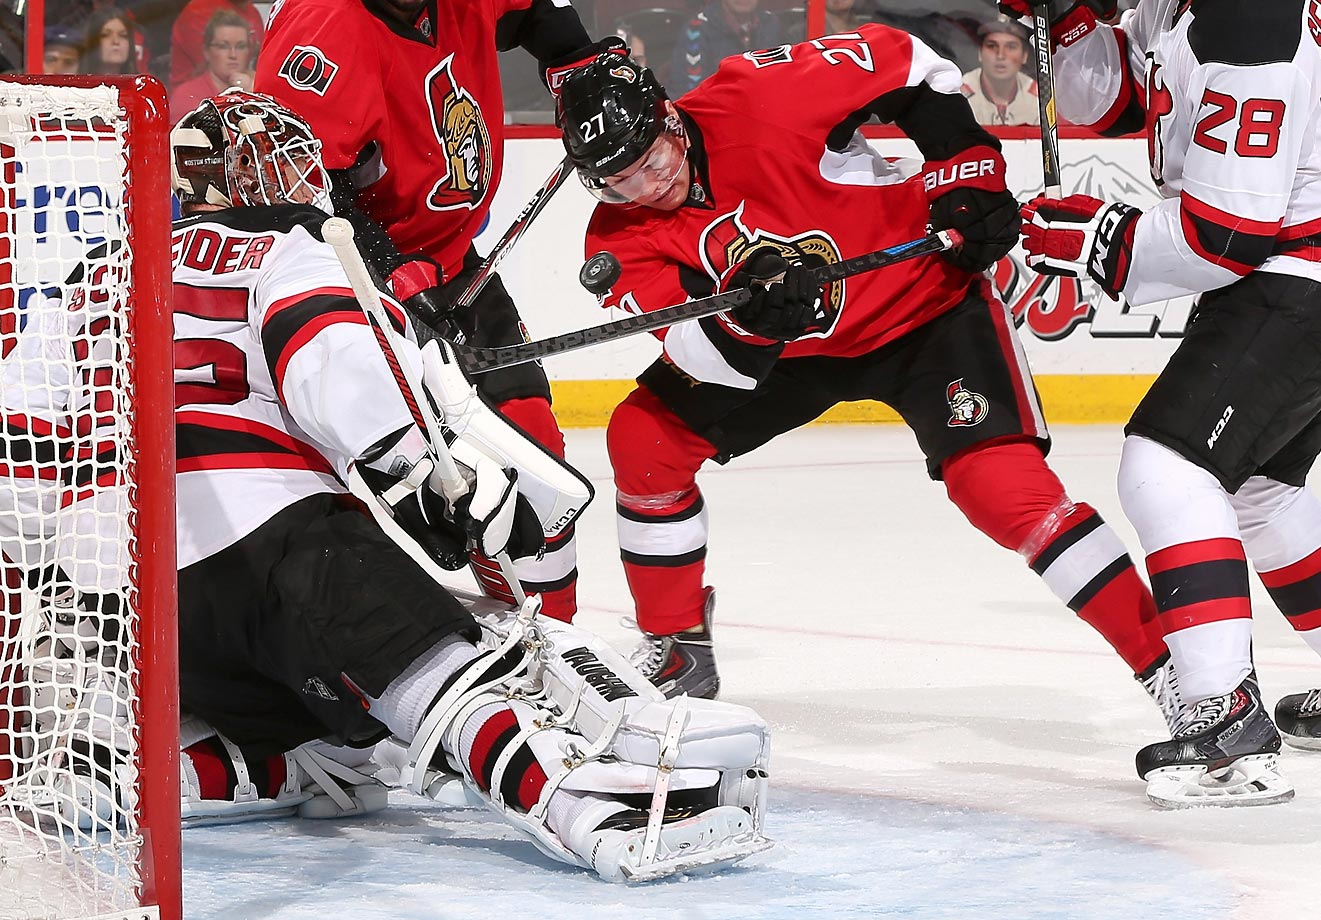 Curtis Lazar of the Senators swings at a loose puck against Cory Schneider of the Devils.